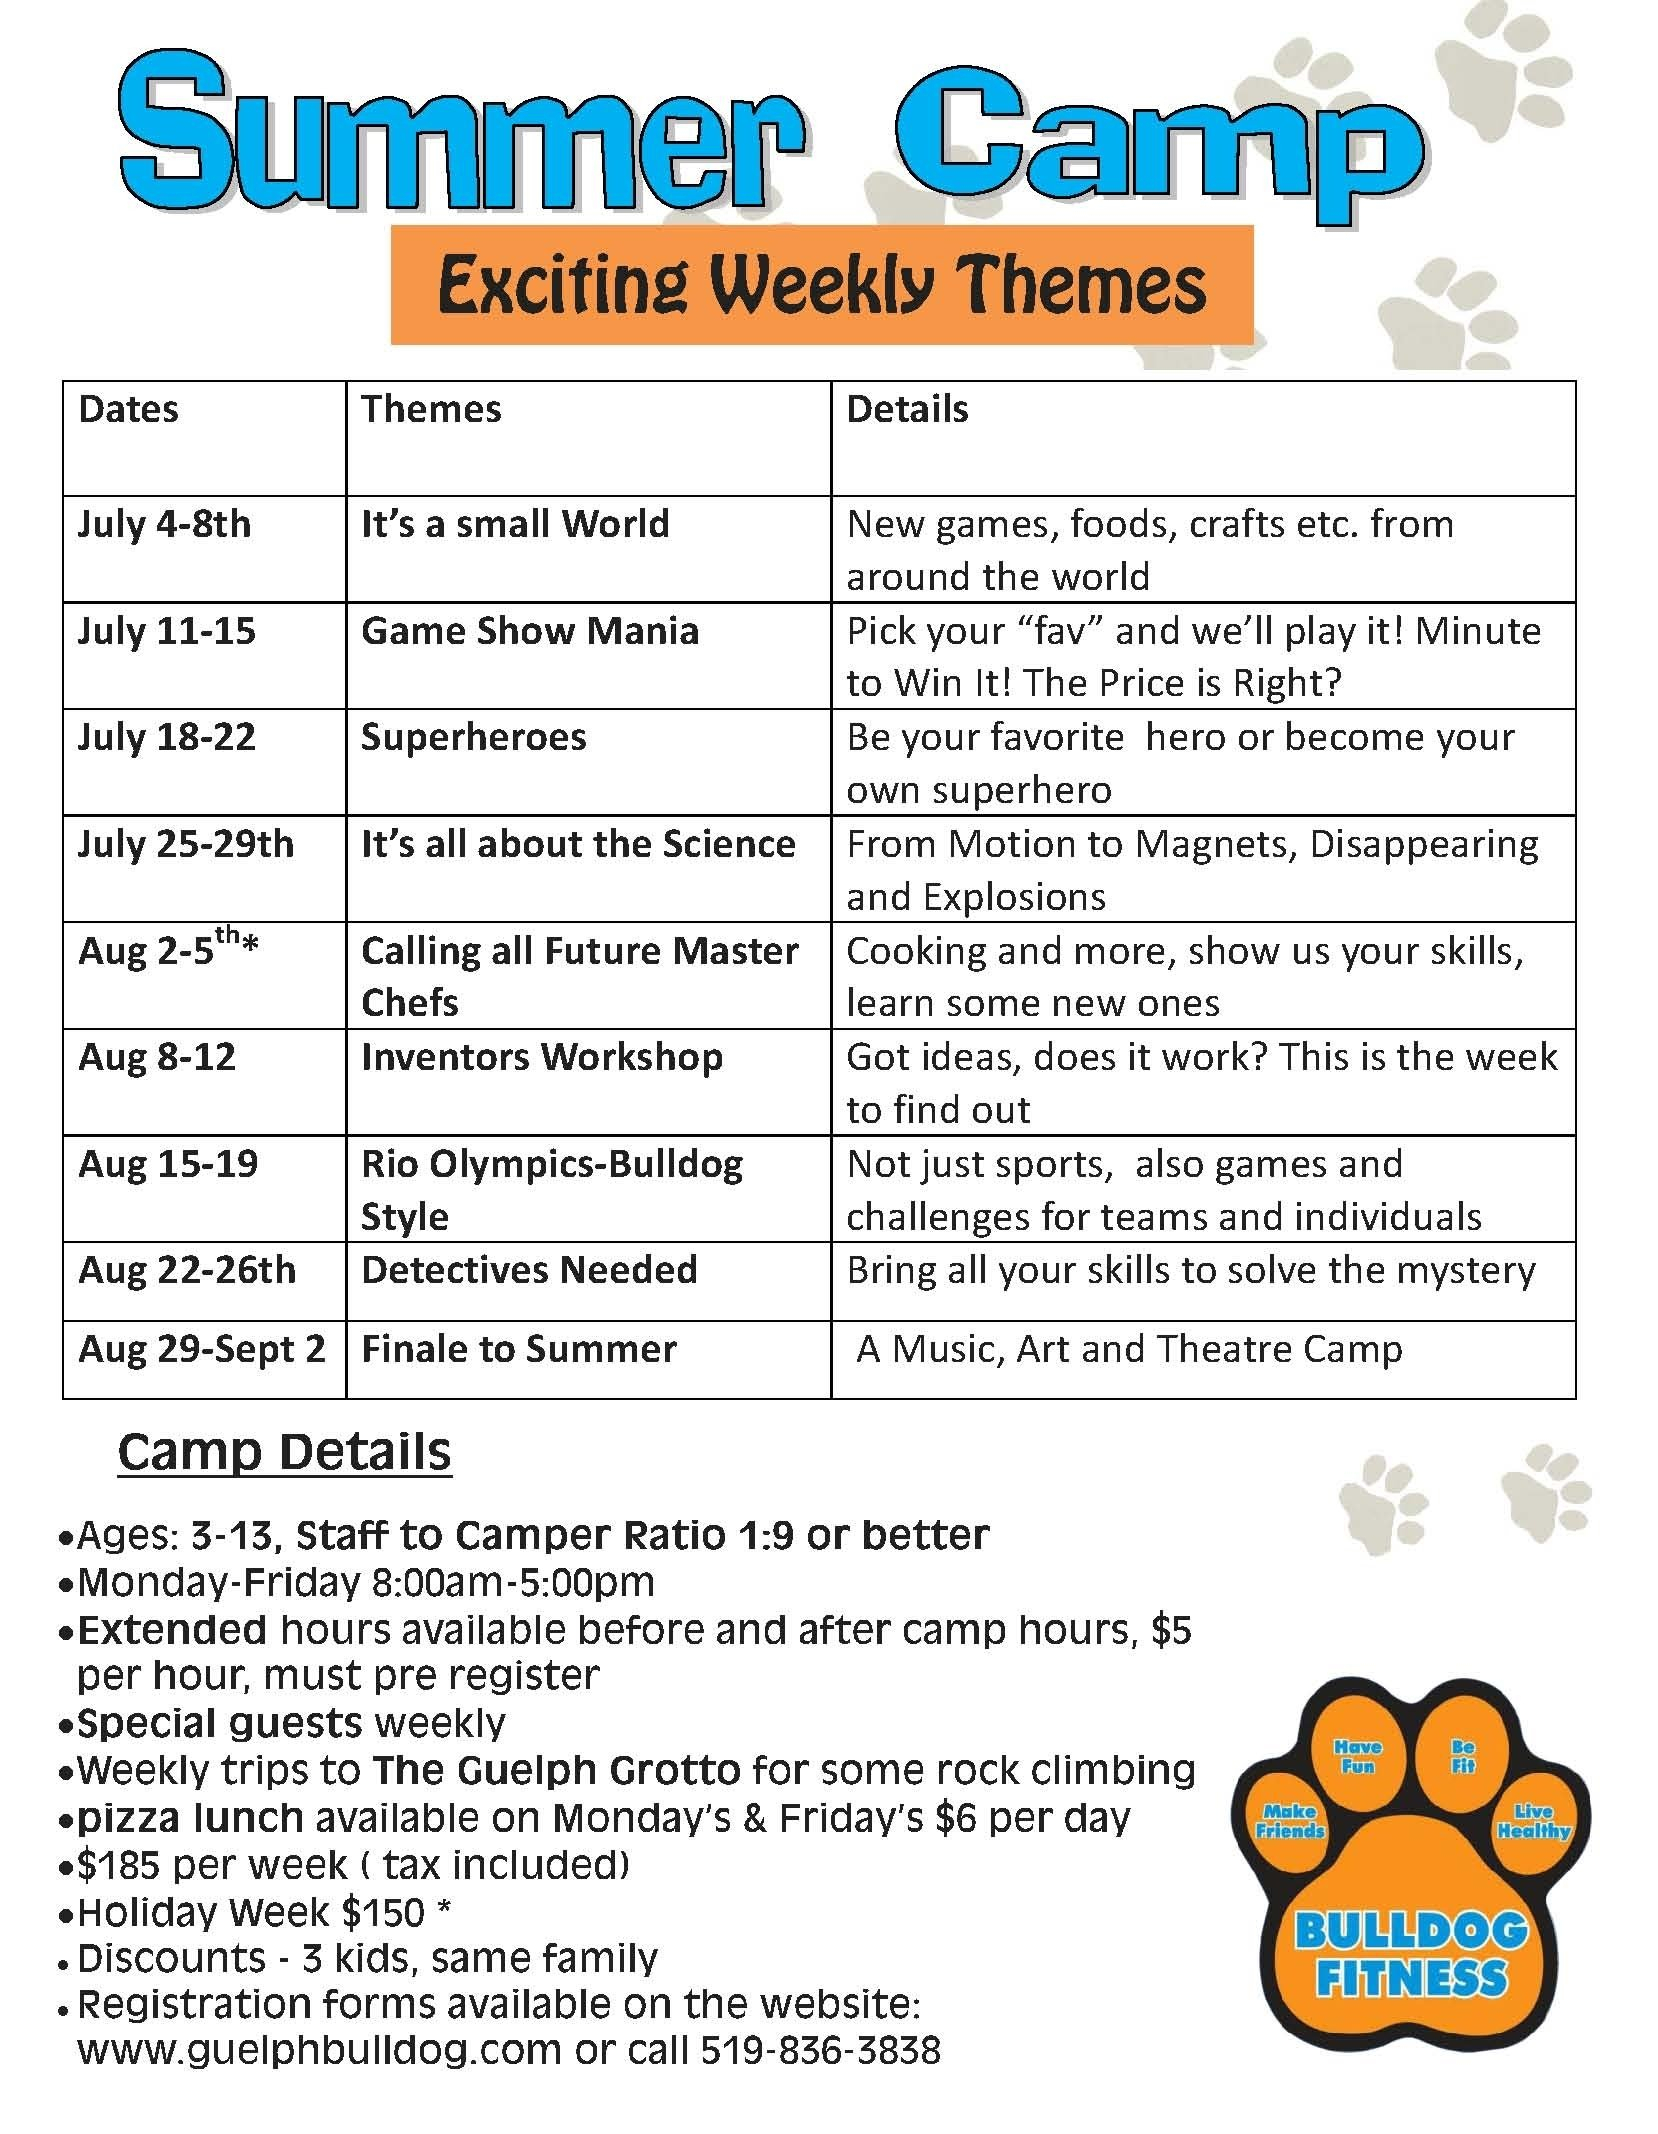 10 Most Popular Ideas For Summer Camp Themes summer camp themes list www topsimages 2020